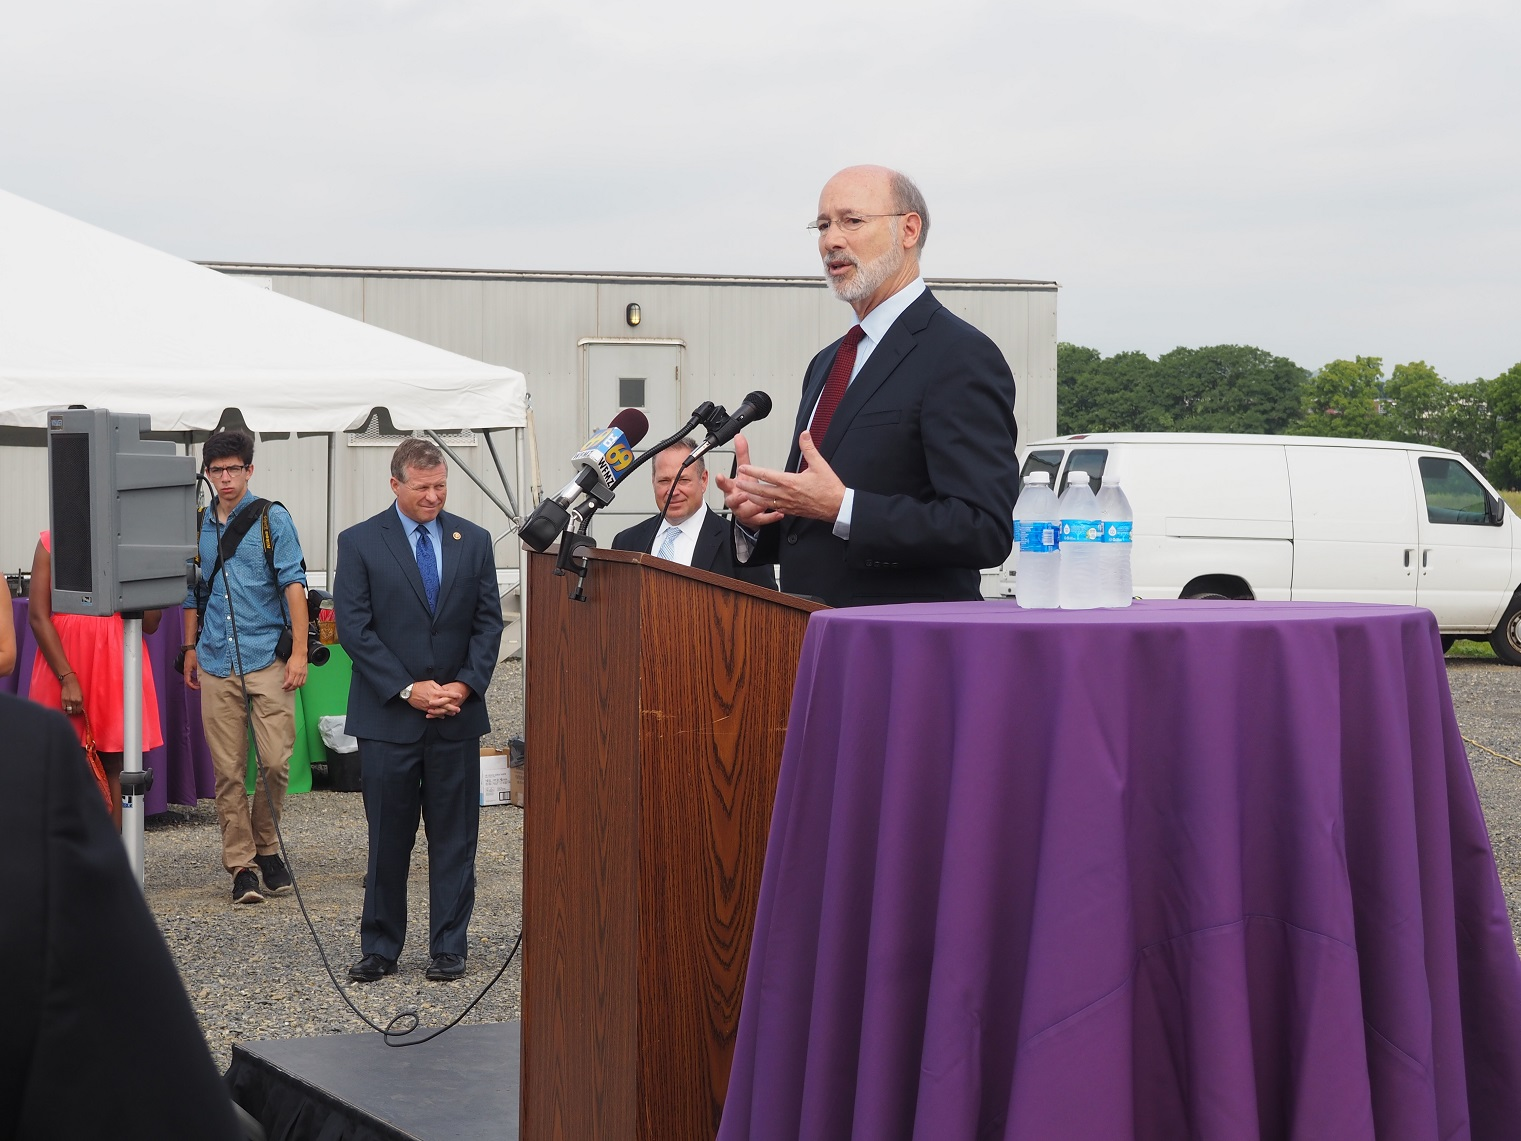 Pennsylvania Gov. Tom Wolf speaking at the Fedex Ground groundbreaking in Allen Township.